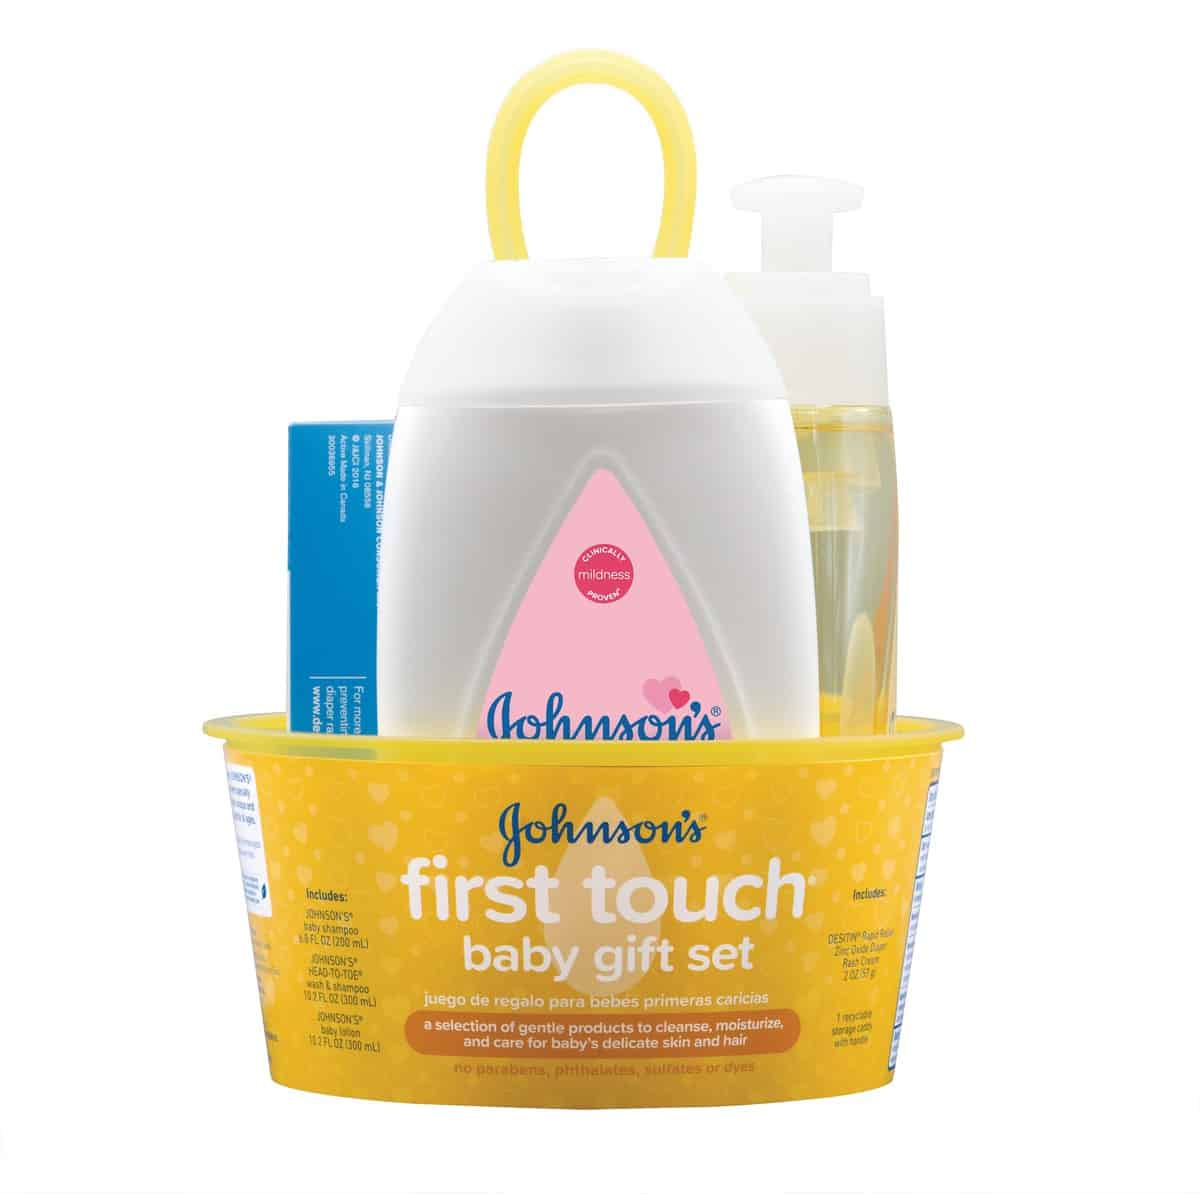 Johnsons First Touch Baby Gift Set  Daily mom parents portal Gifts for Parents and Kids to Enjoy